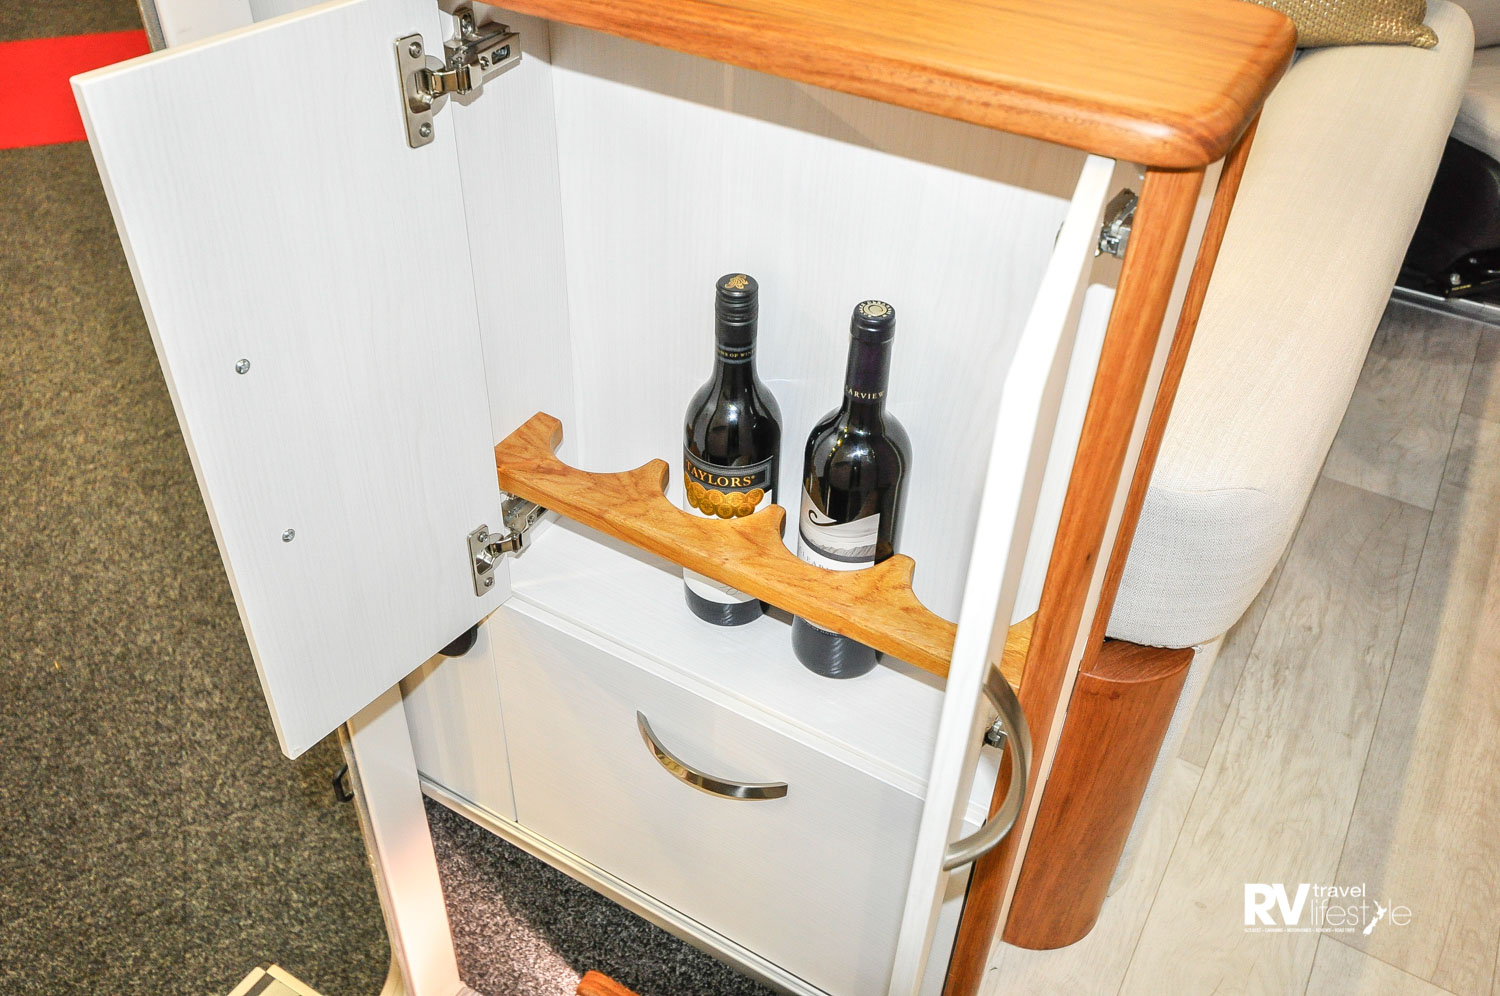 A very useful cupboard tucked to the left side upon entry to the vehicle, provides safe wine bottle storage, I like it